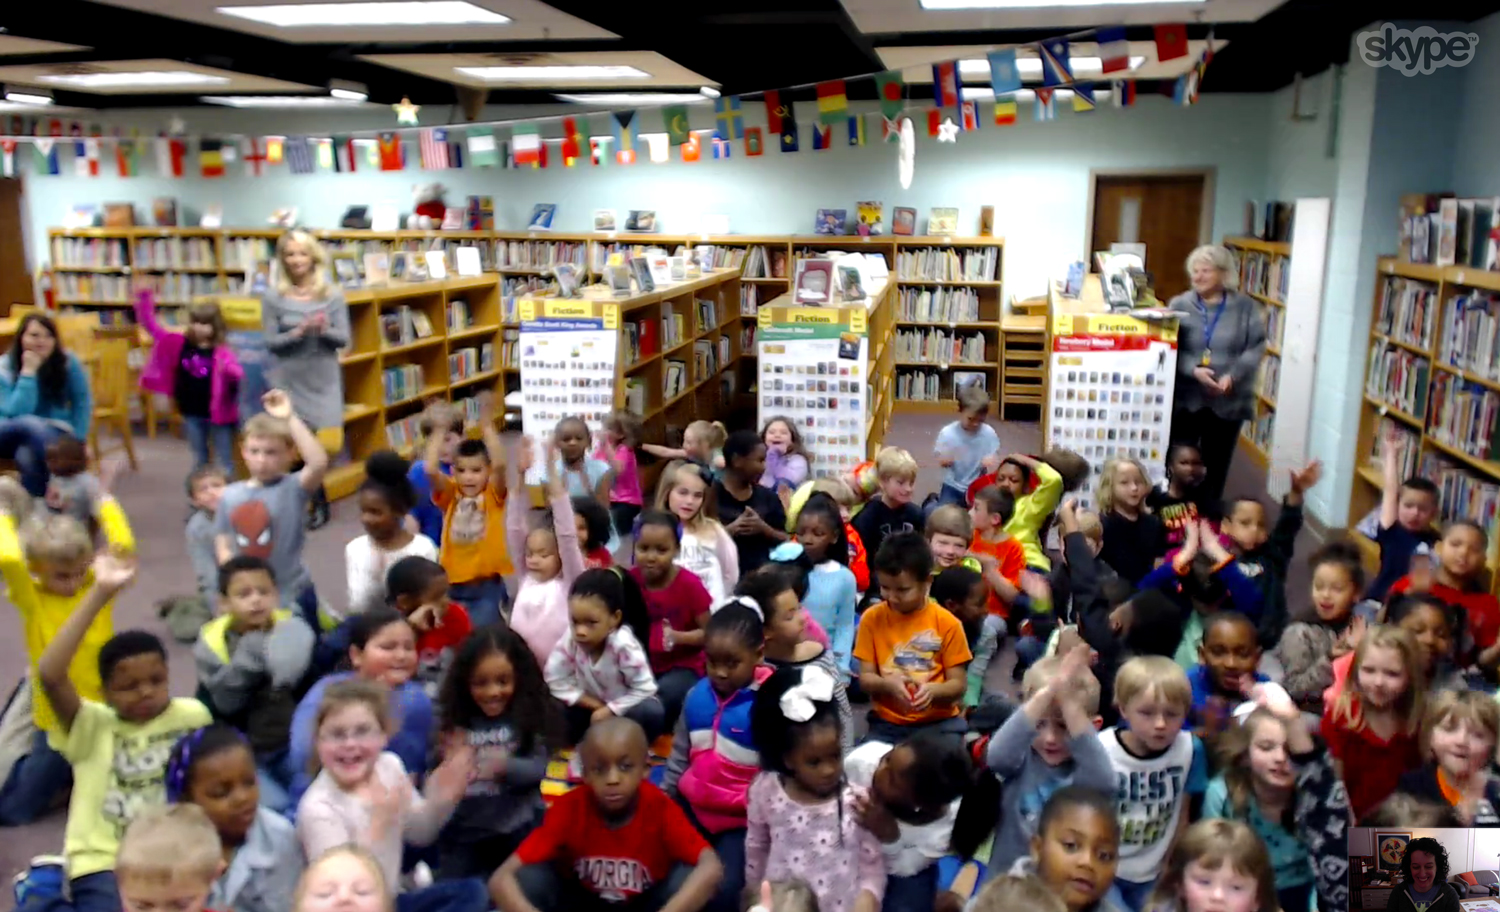 These students in Hartwell Elementary School in Hartwell, GA had some excellent questions about how I make my illustrations.